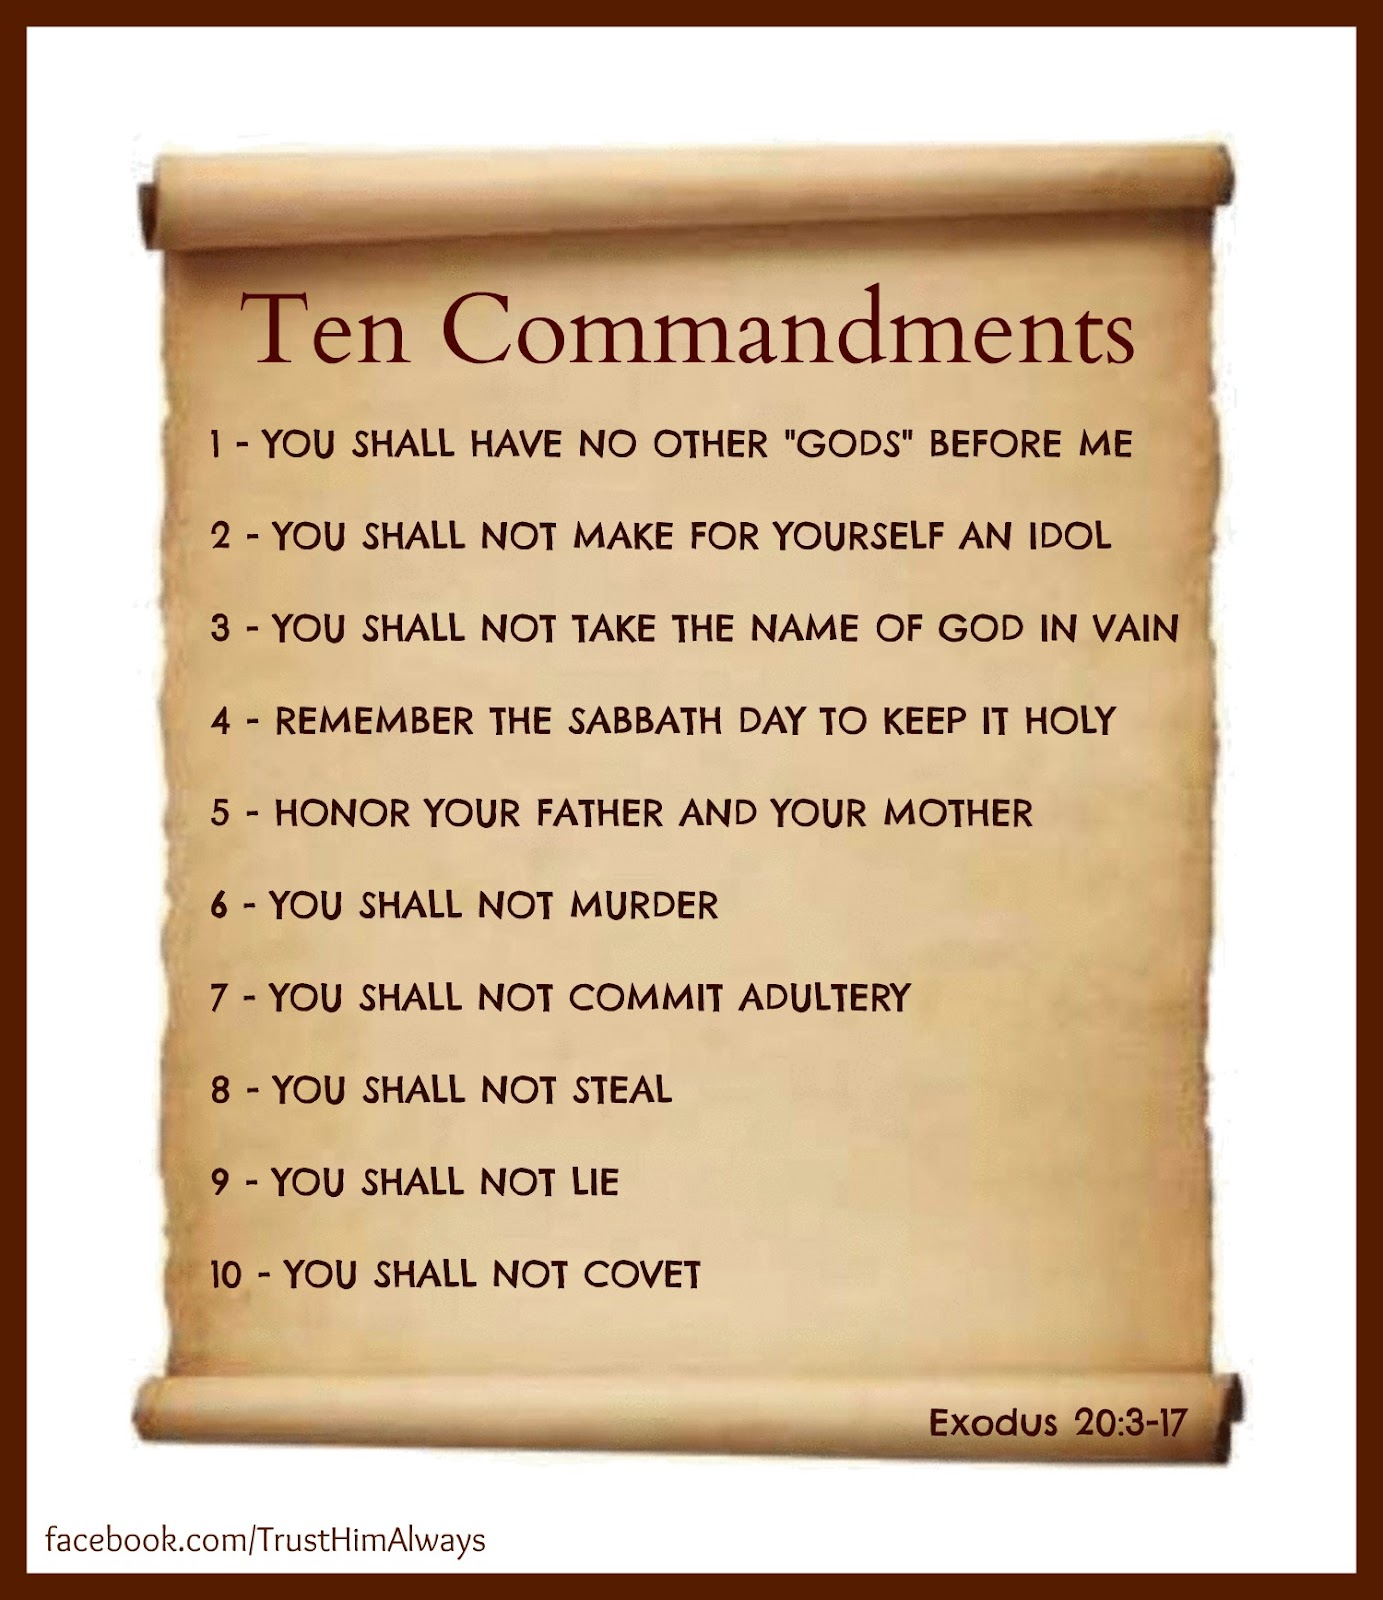 graphic regarding Catholic Ten Commandments Printable known as Exodus 20 10 commandments CatholicFIT